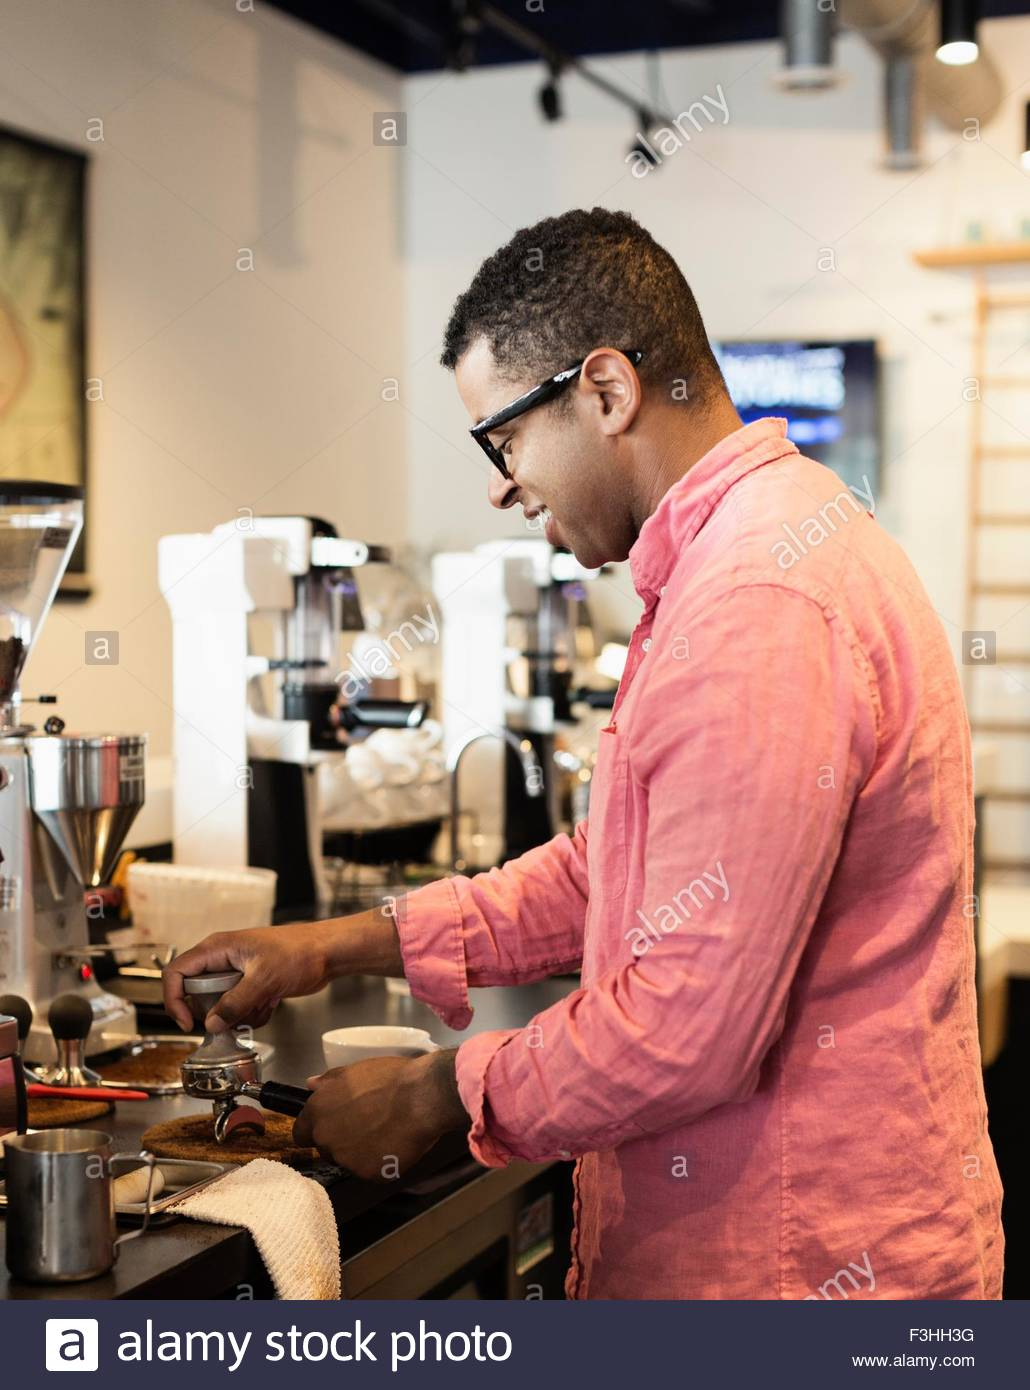 Coffee shop barista removing coffee grounds - Stock Image